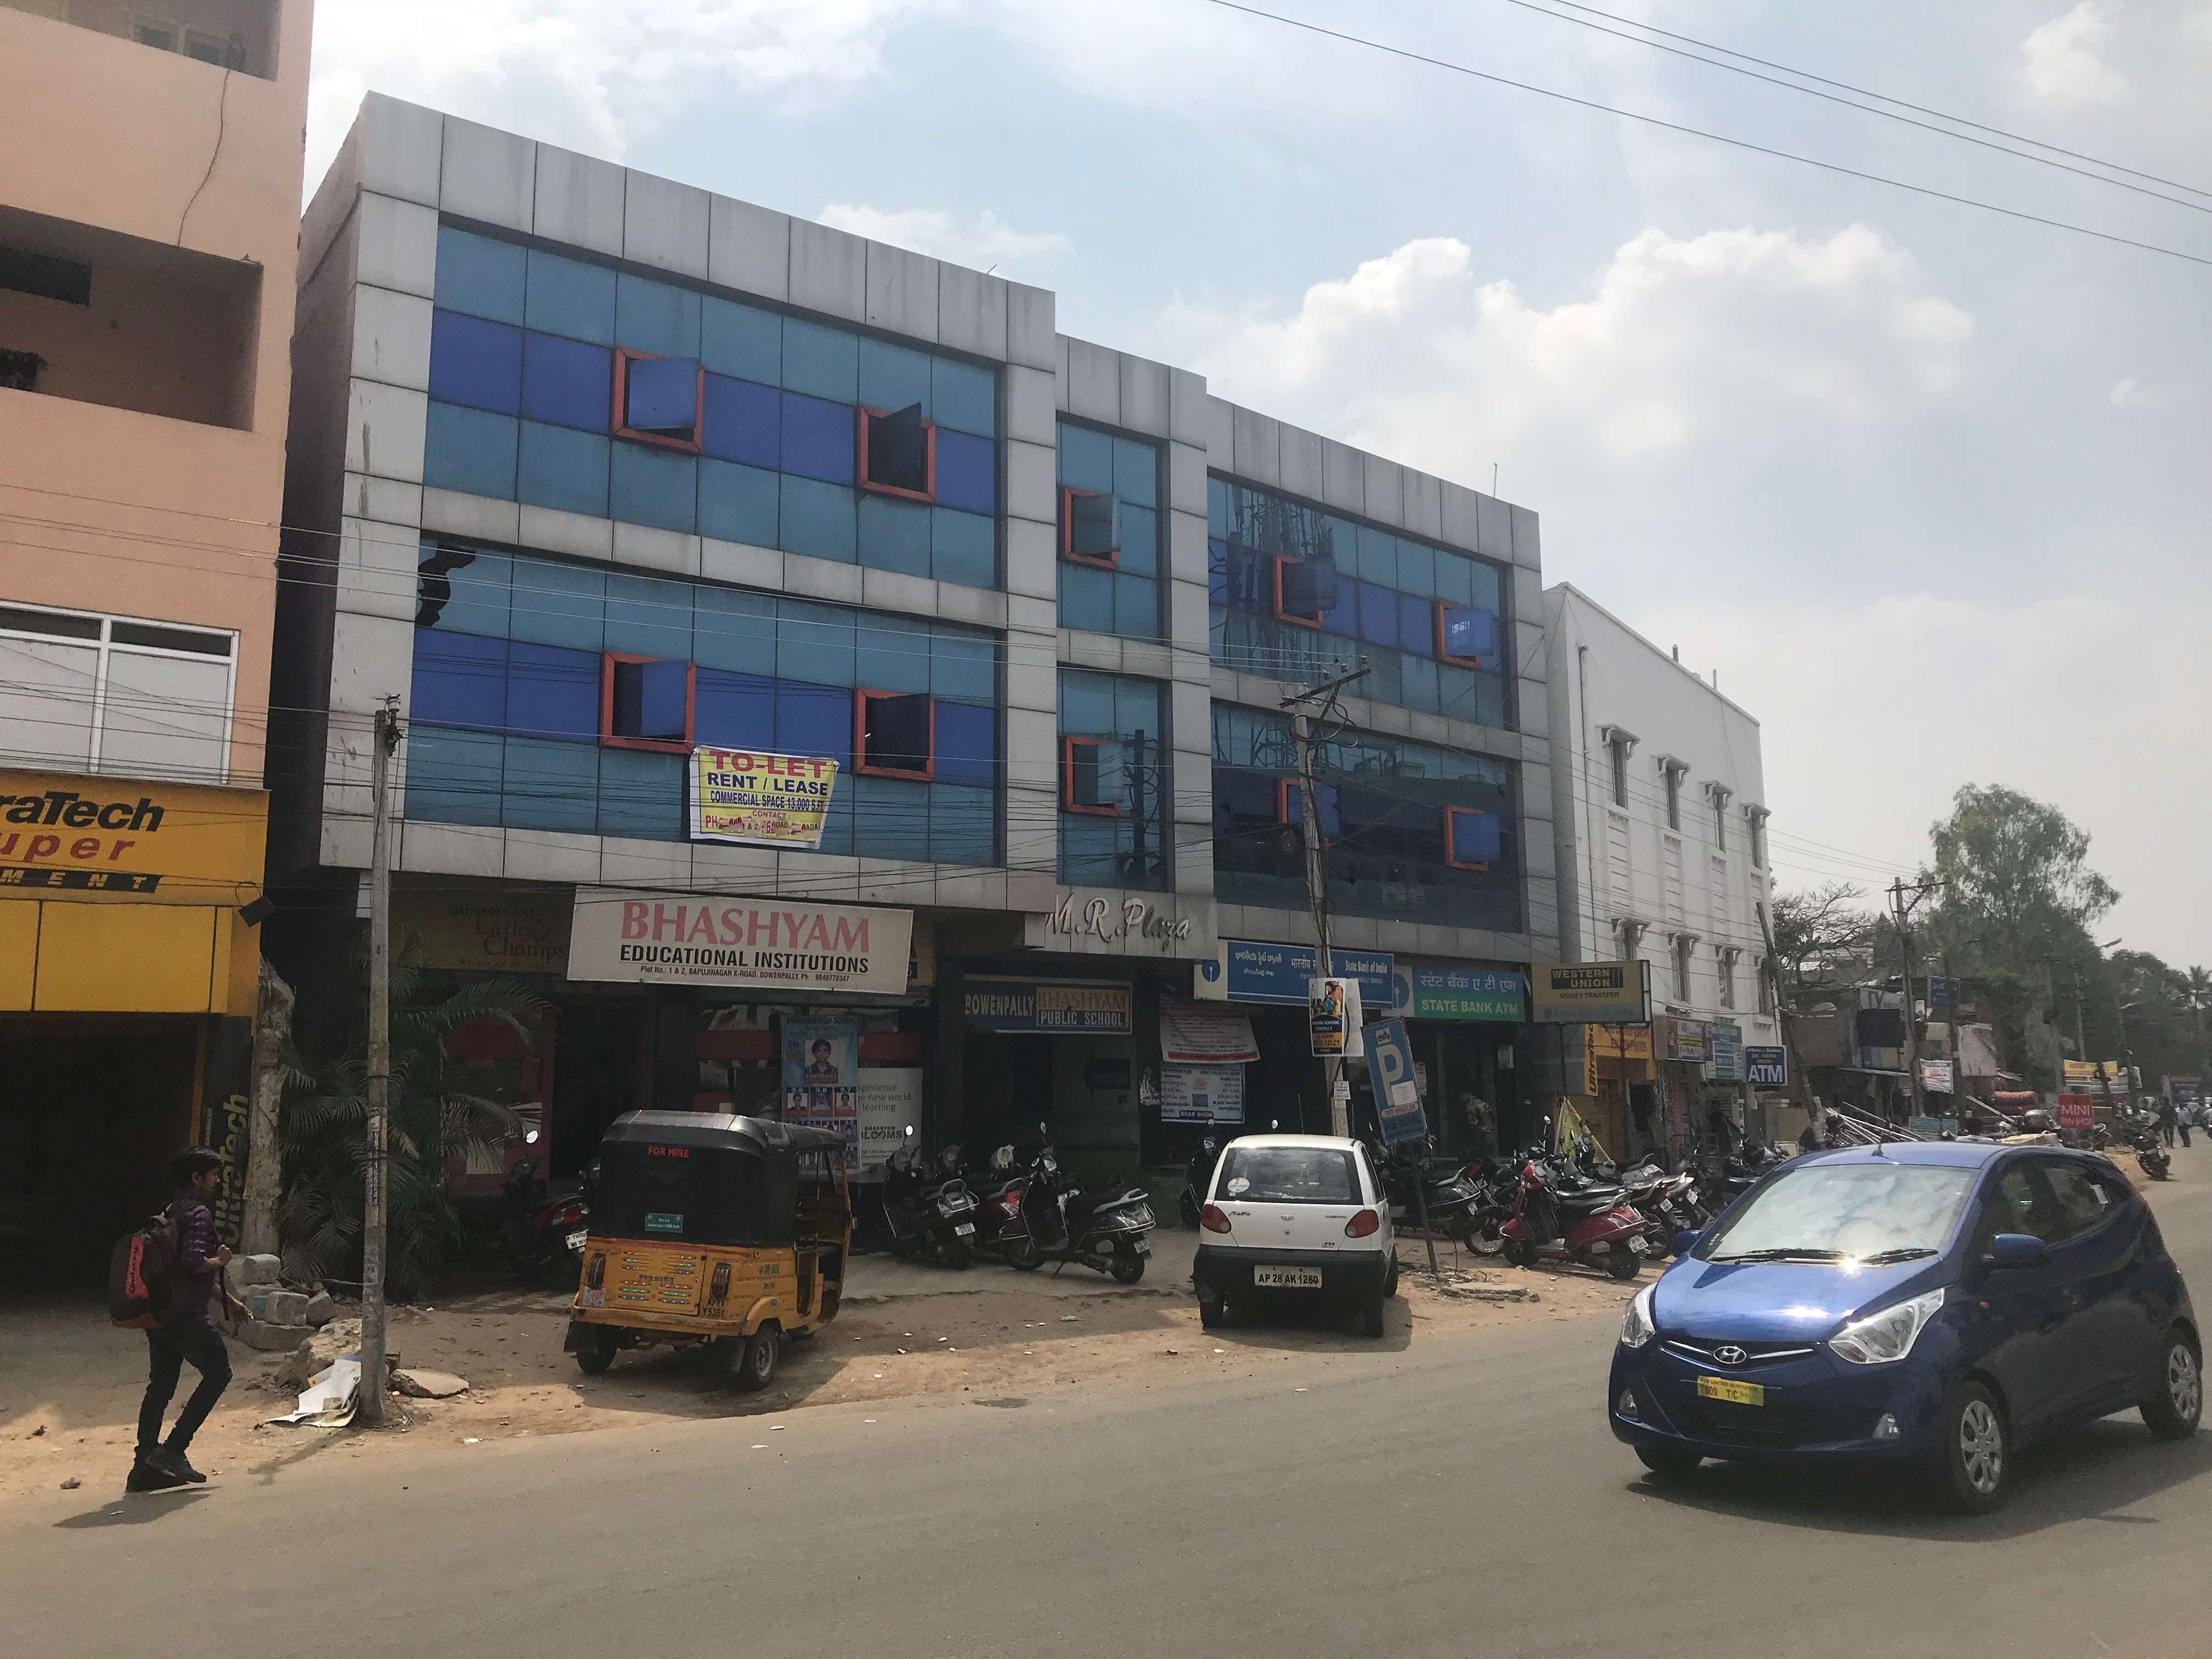 Commercial Space for Lease / Rent in Bapuji Nagar Hyderabad